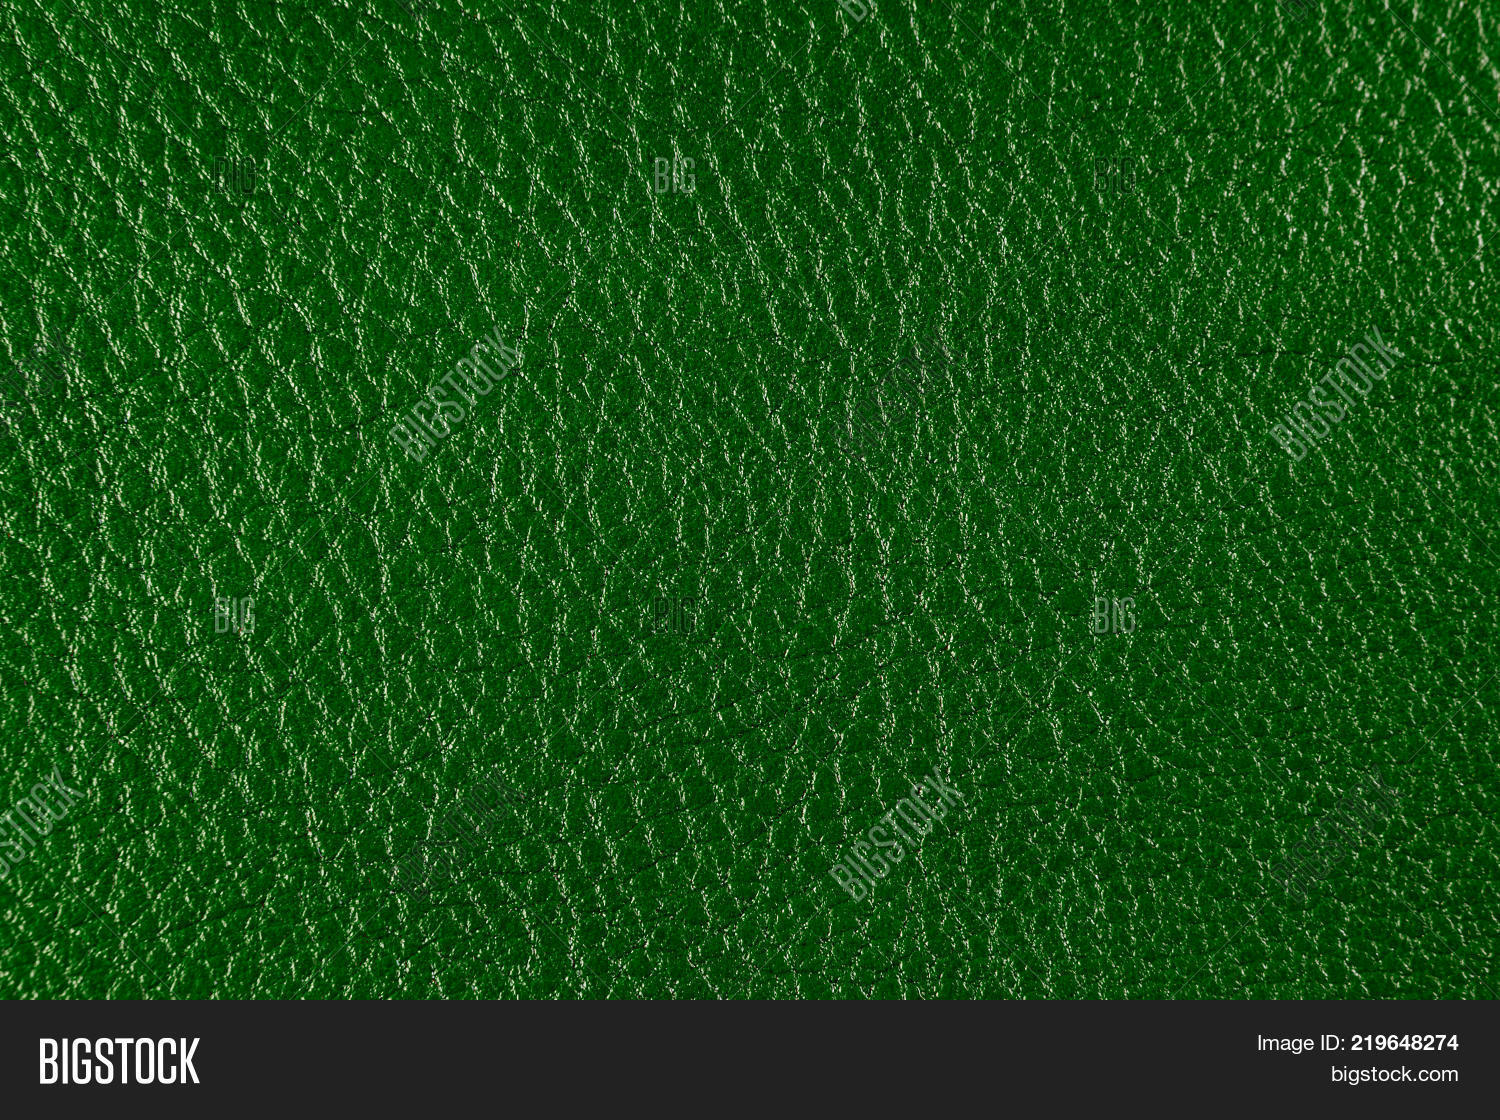 Texture Artificial Image Photo Free Trial Bigstock